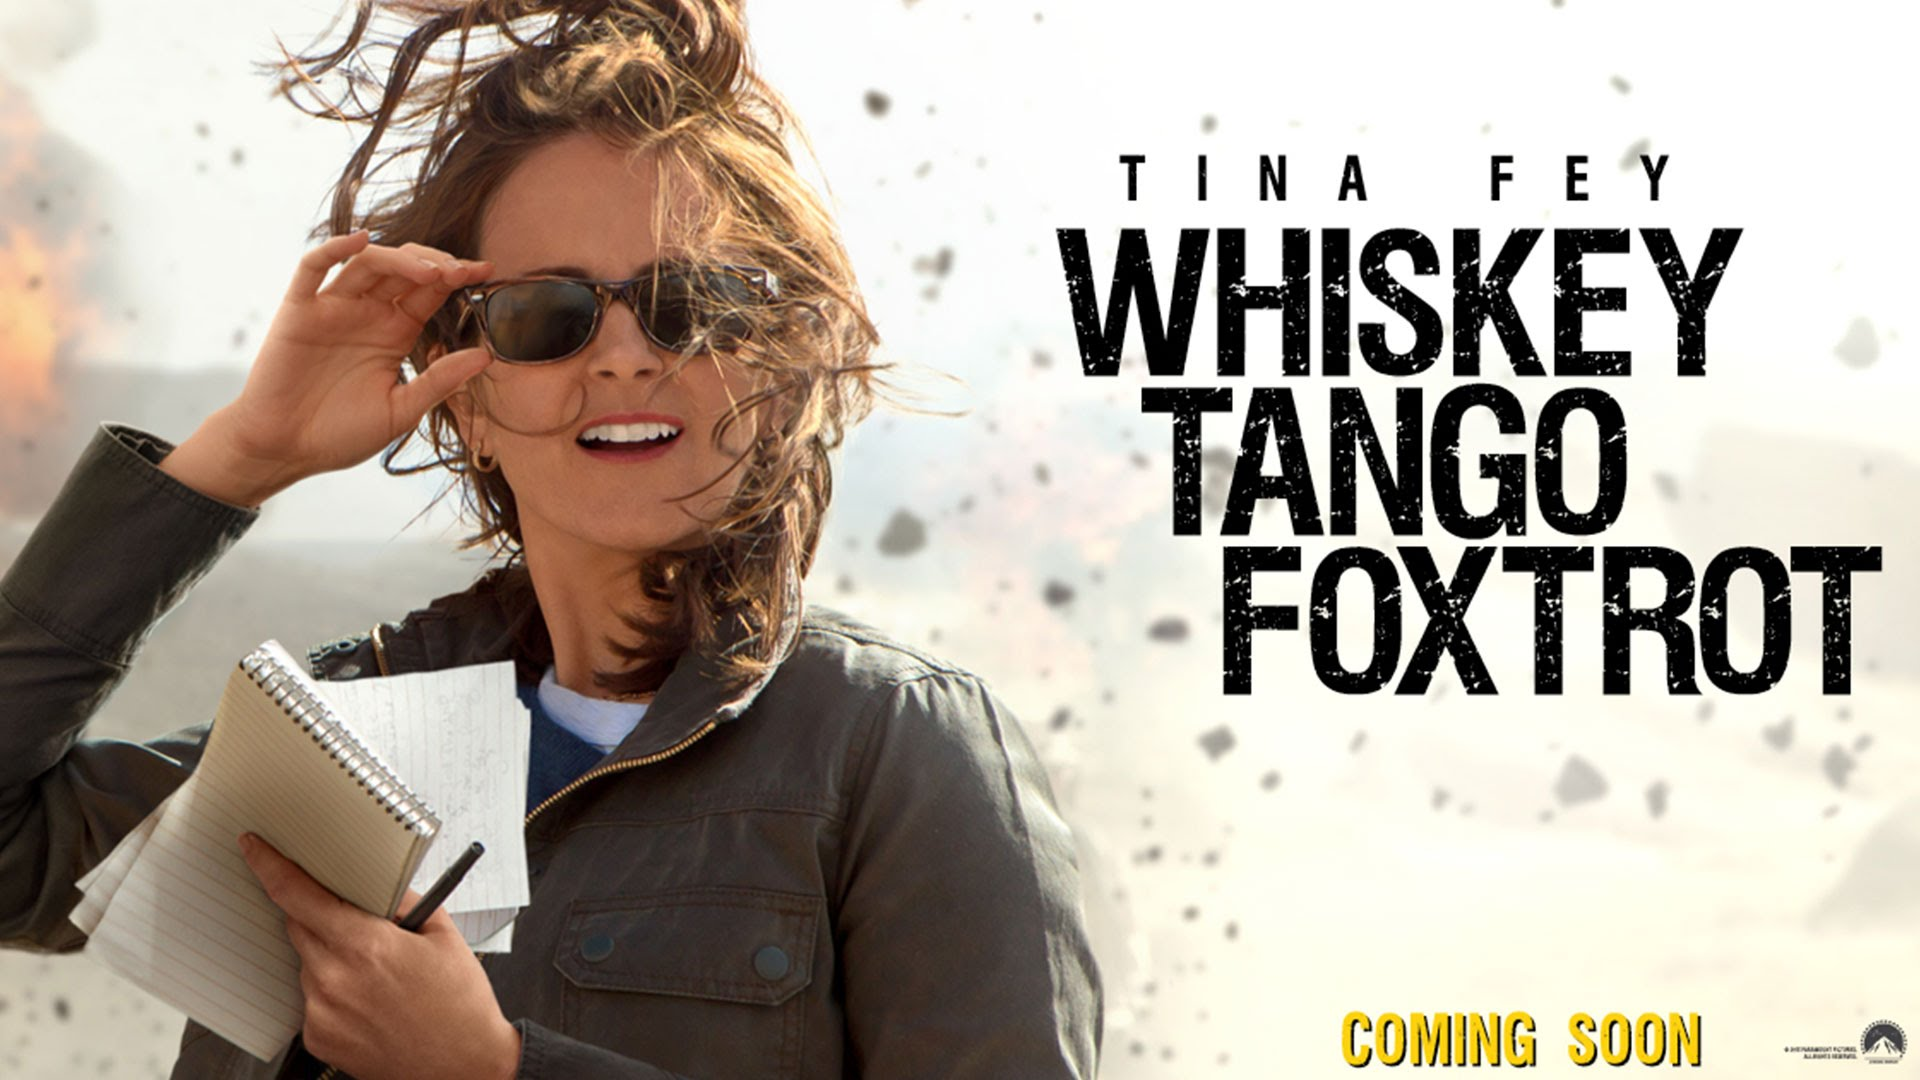 Interview: Journalist Kim Barker, the Inspiration for Whiskey Tango Foxtrot